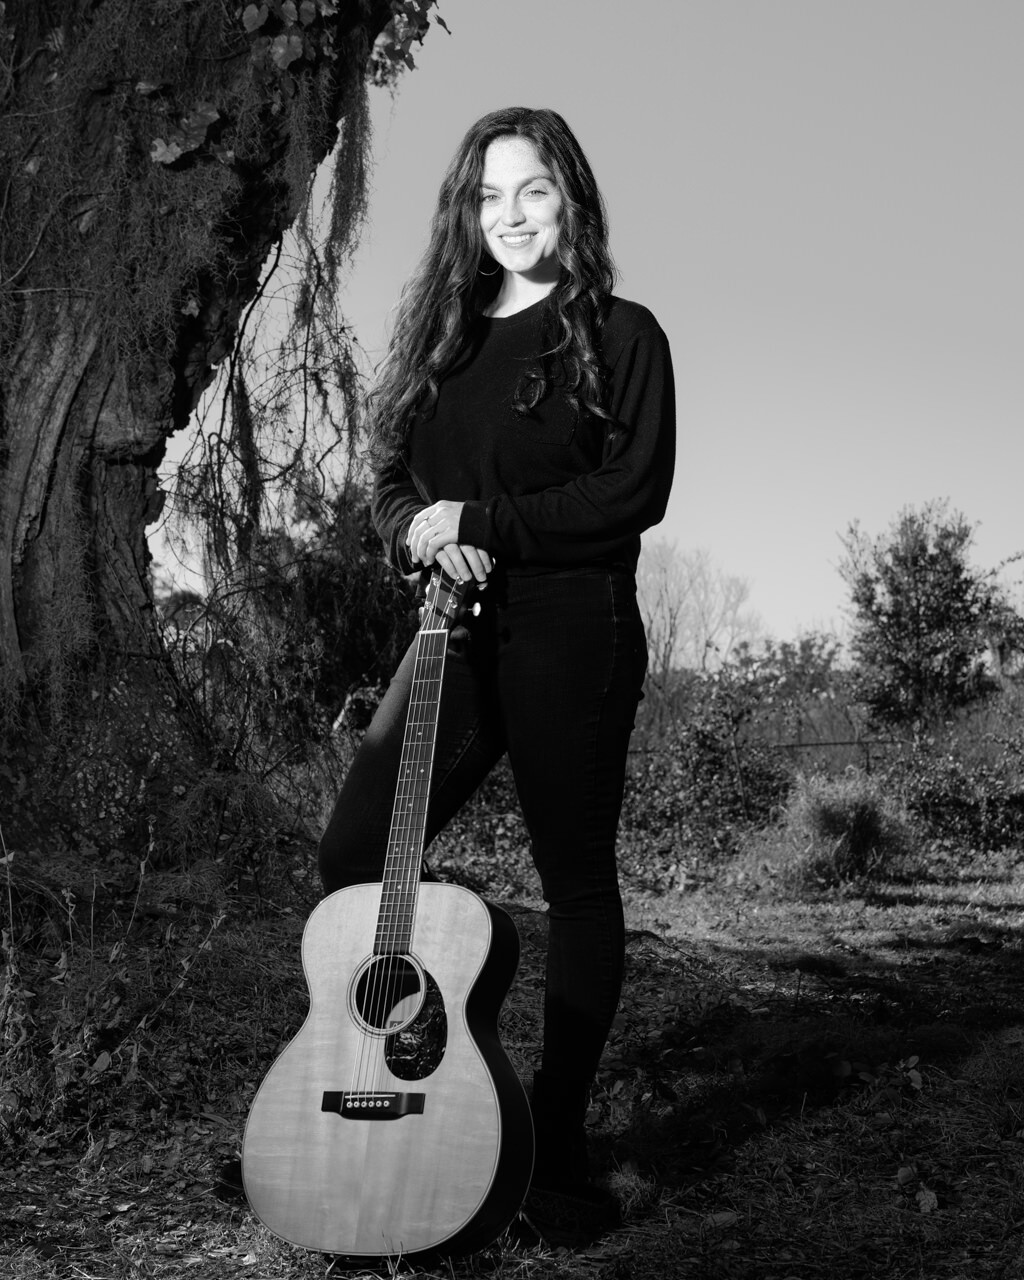 Layla Brisbois singer-songwriter based in orlando posing with her guitar in black and white